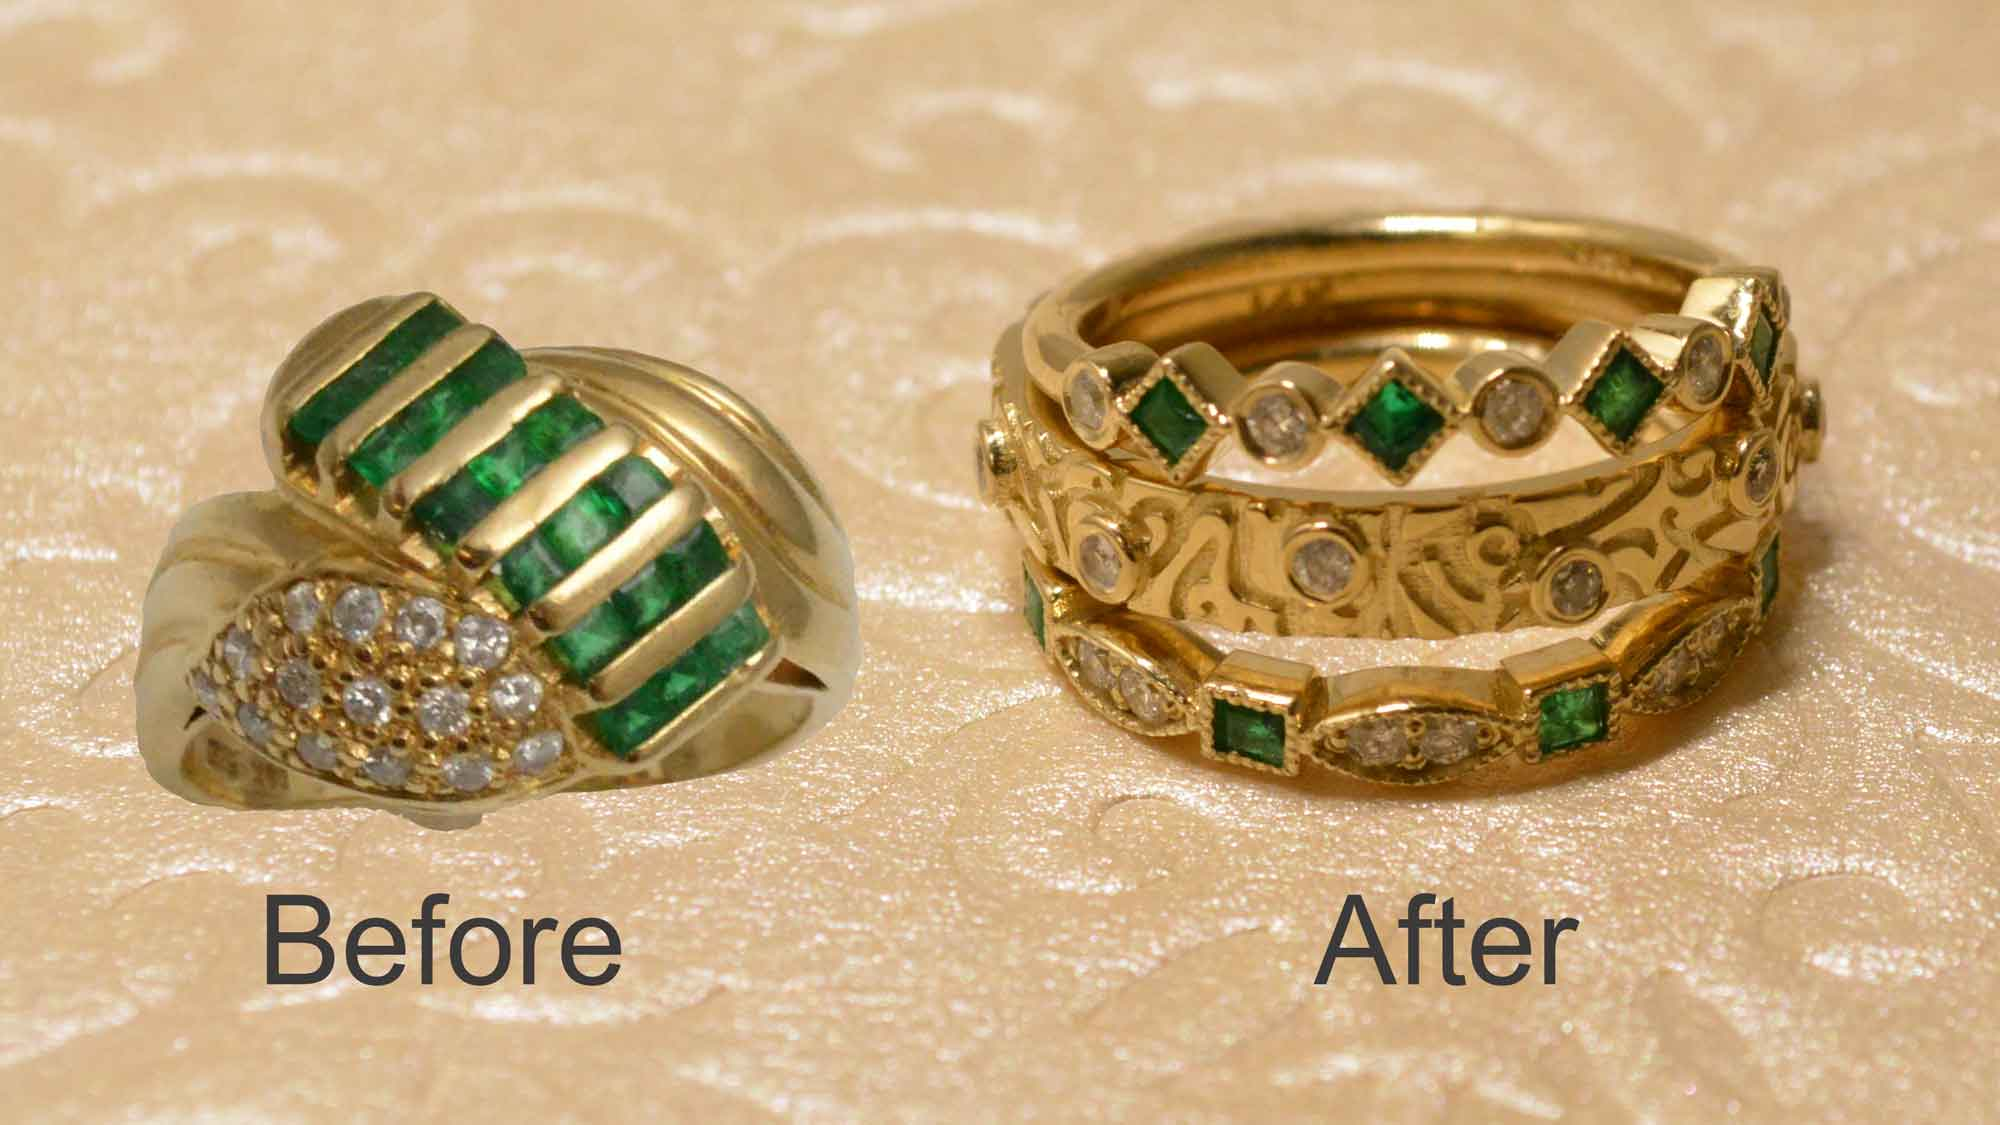 Remake Old Jewelry In Dayton, Ohio